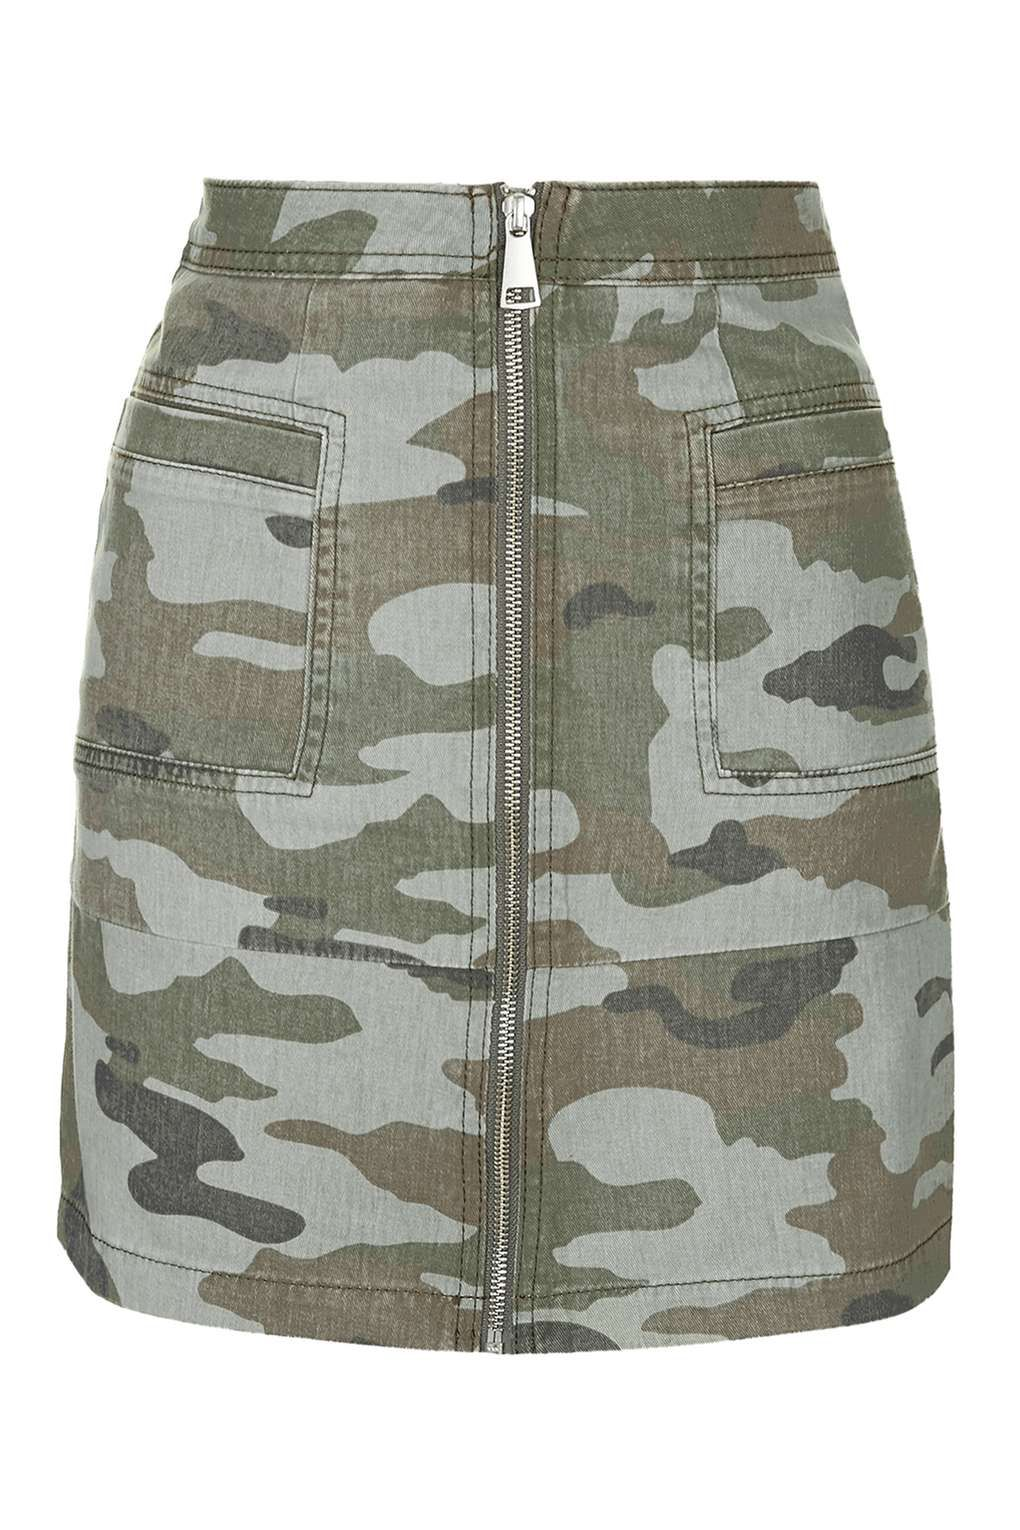 Womens Army Camo Stretchy Side Ruched Bodycon Ladies Pencil Tube Mini Skirt 8-14